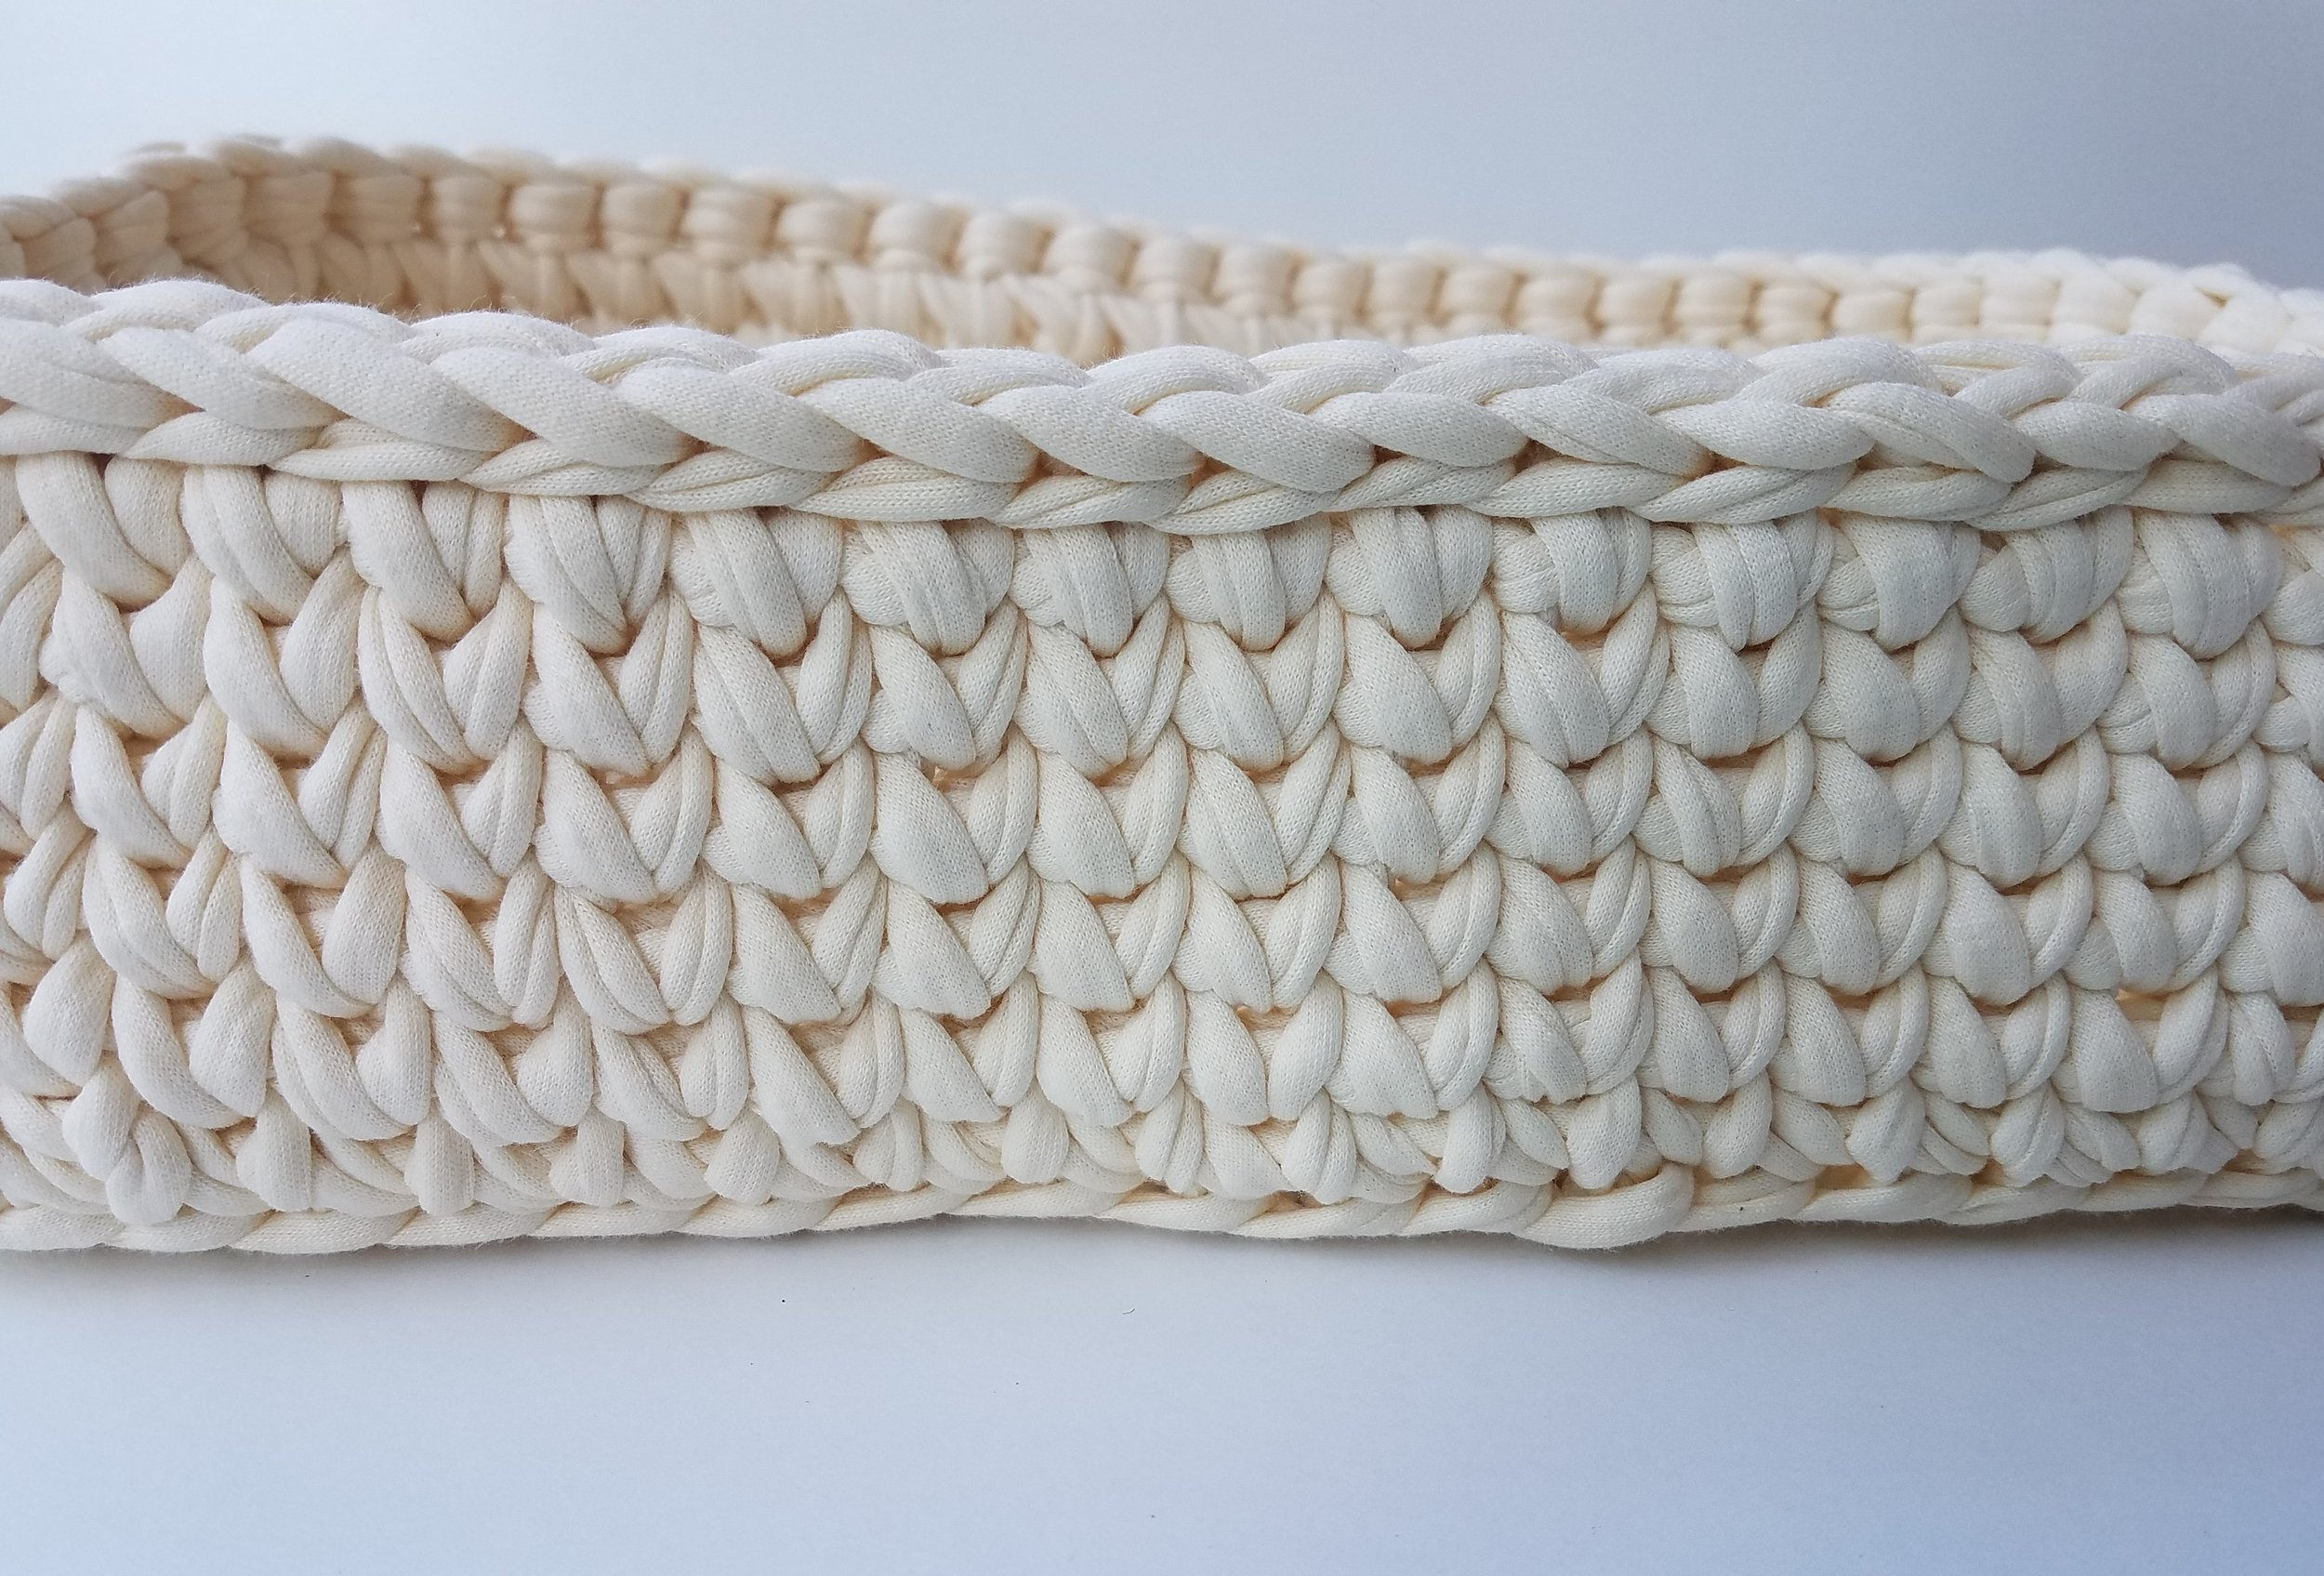 rectangular crochet basket pattern